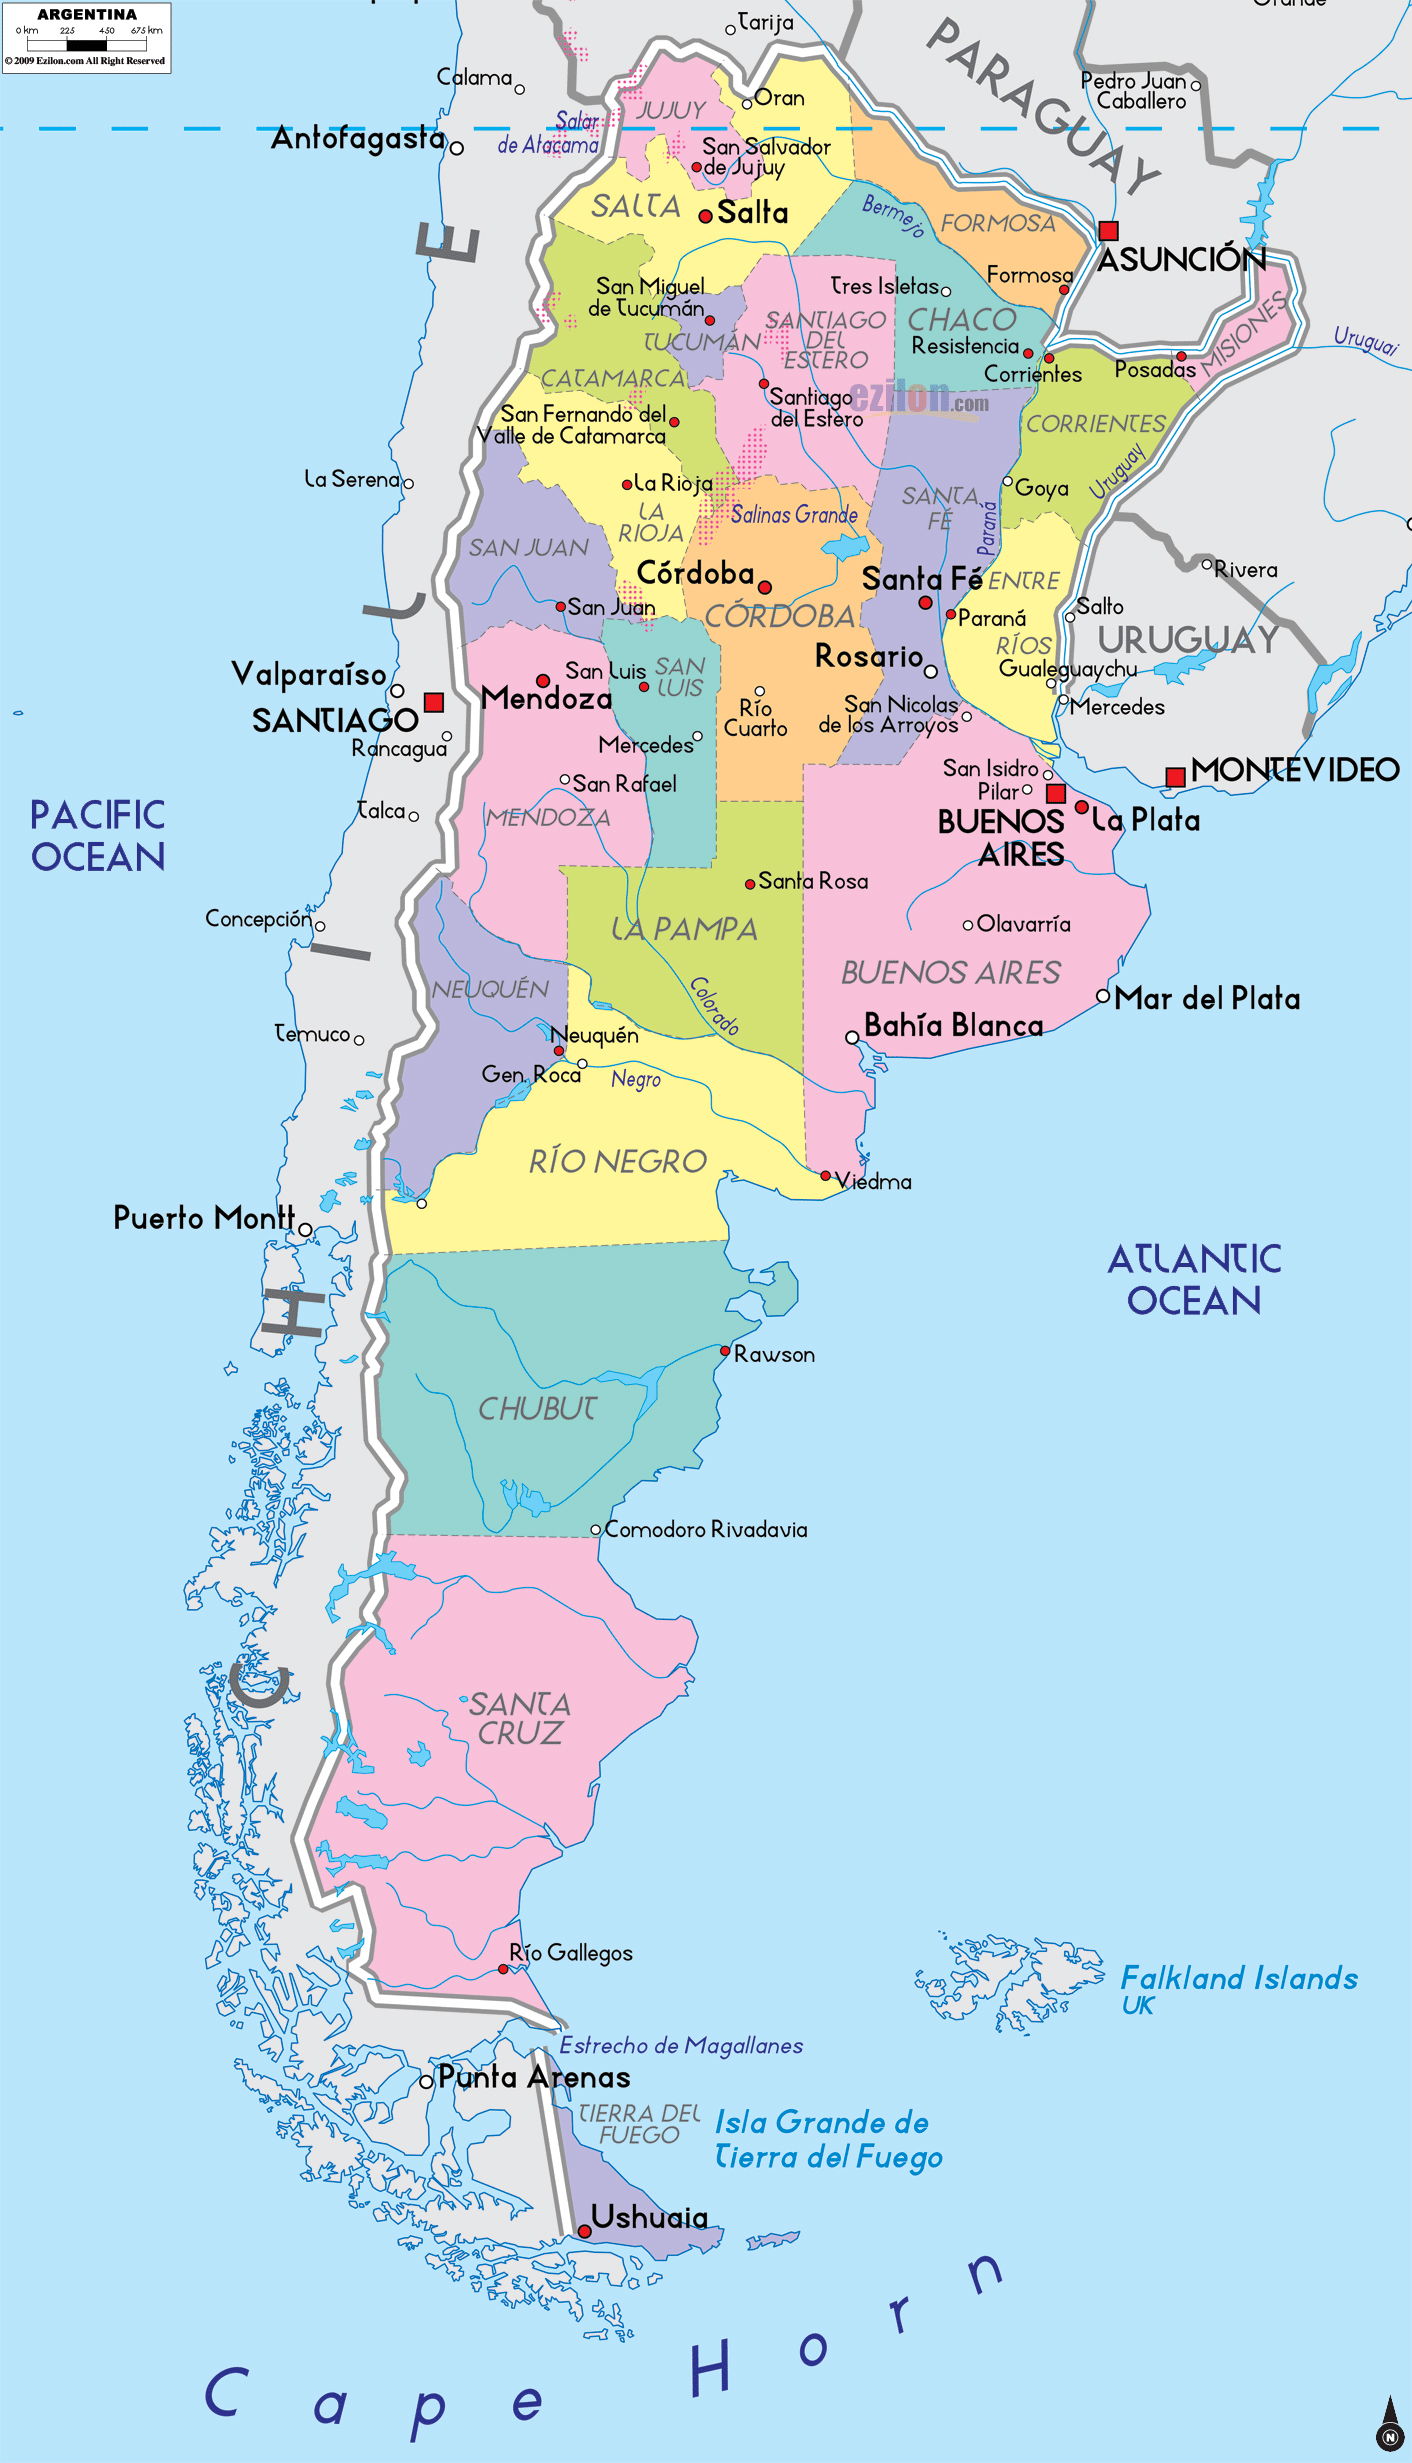 Maps Of Argentina Map Library Maps Of The World - Argentina map cities